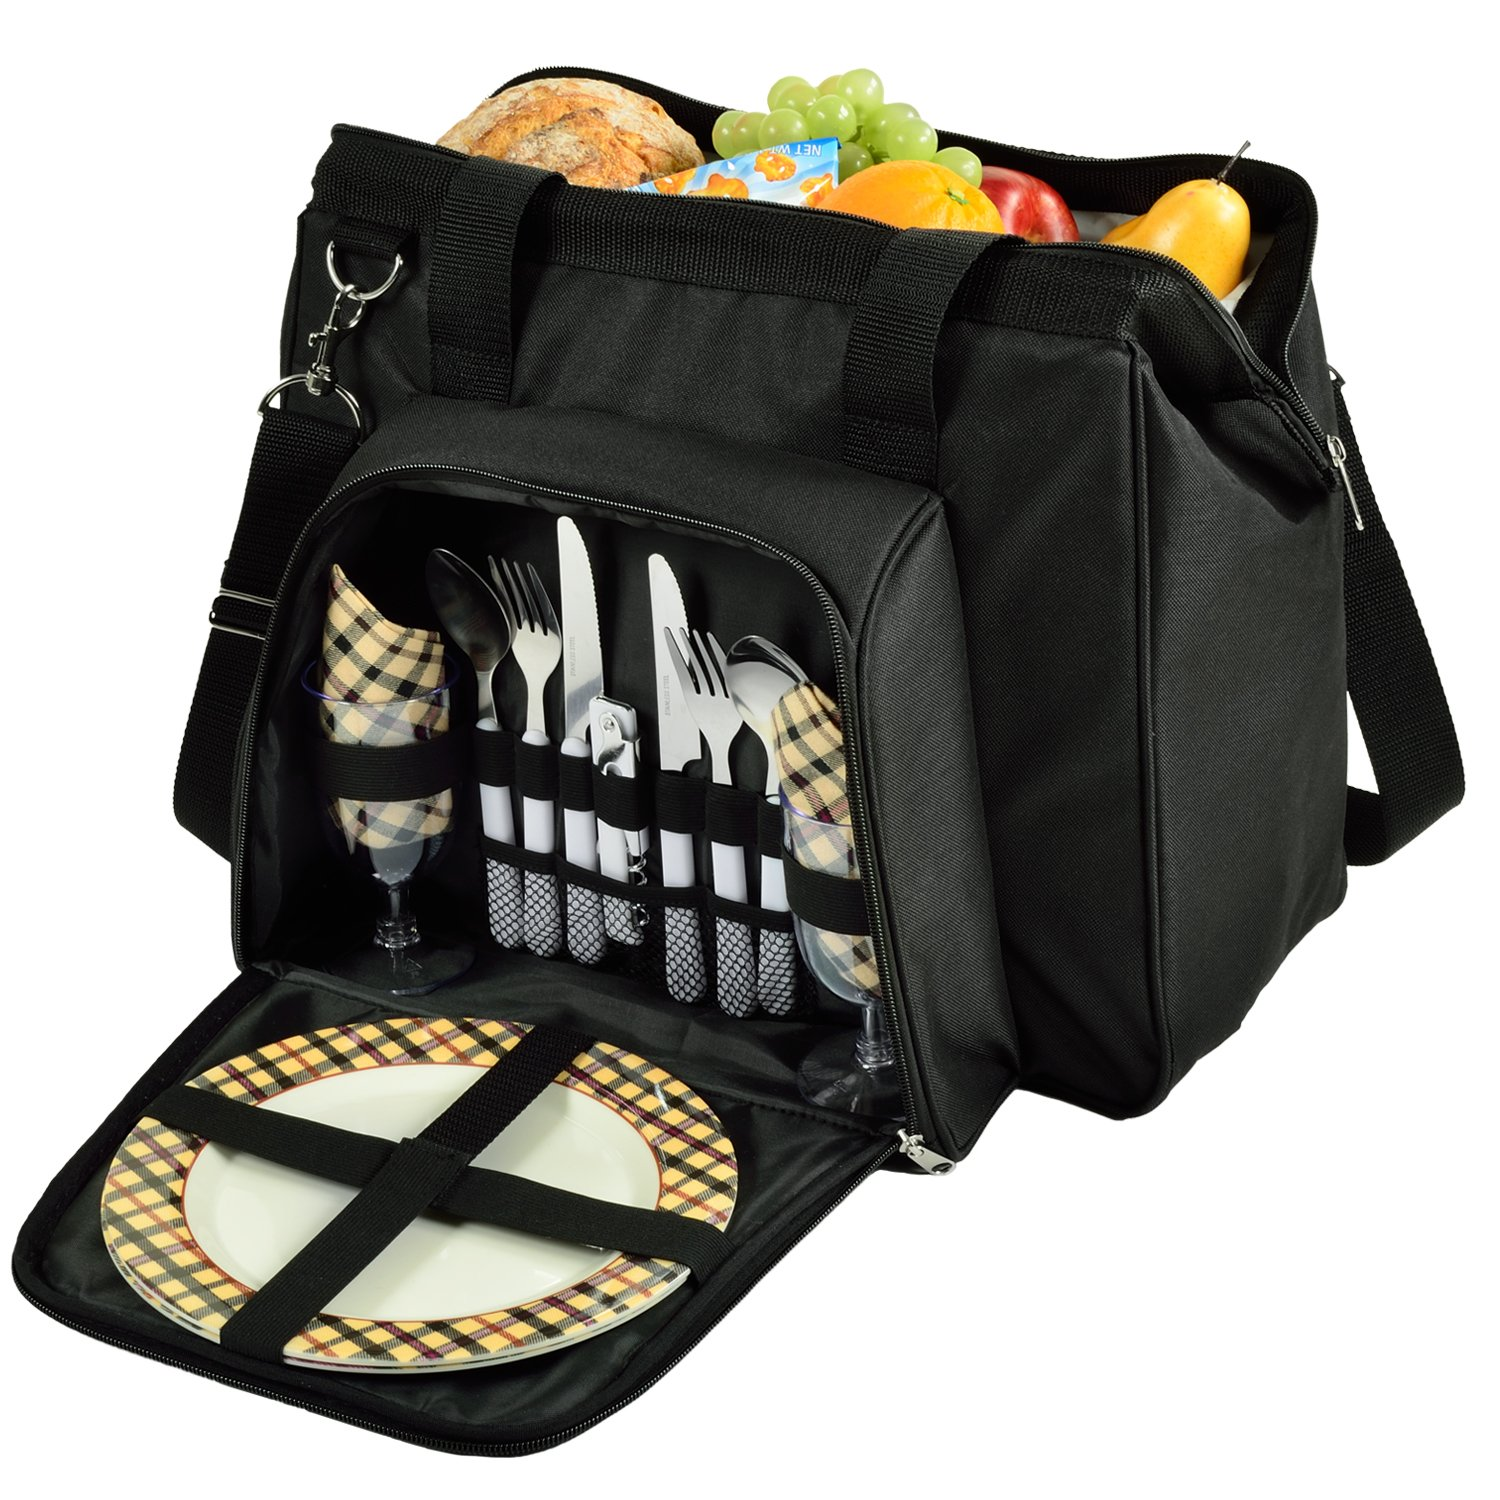 Picnic at Ascot City Picnic Basket Insulated Cooler Equipped for 2 with Contemporary Shape Wide Opening, Black London